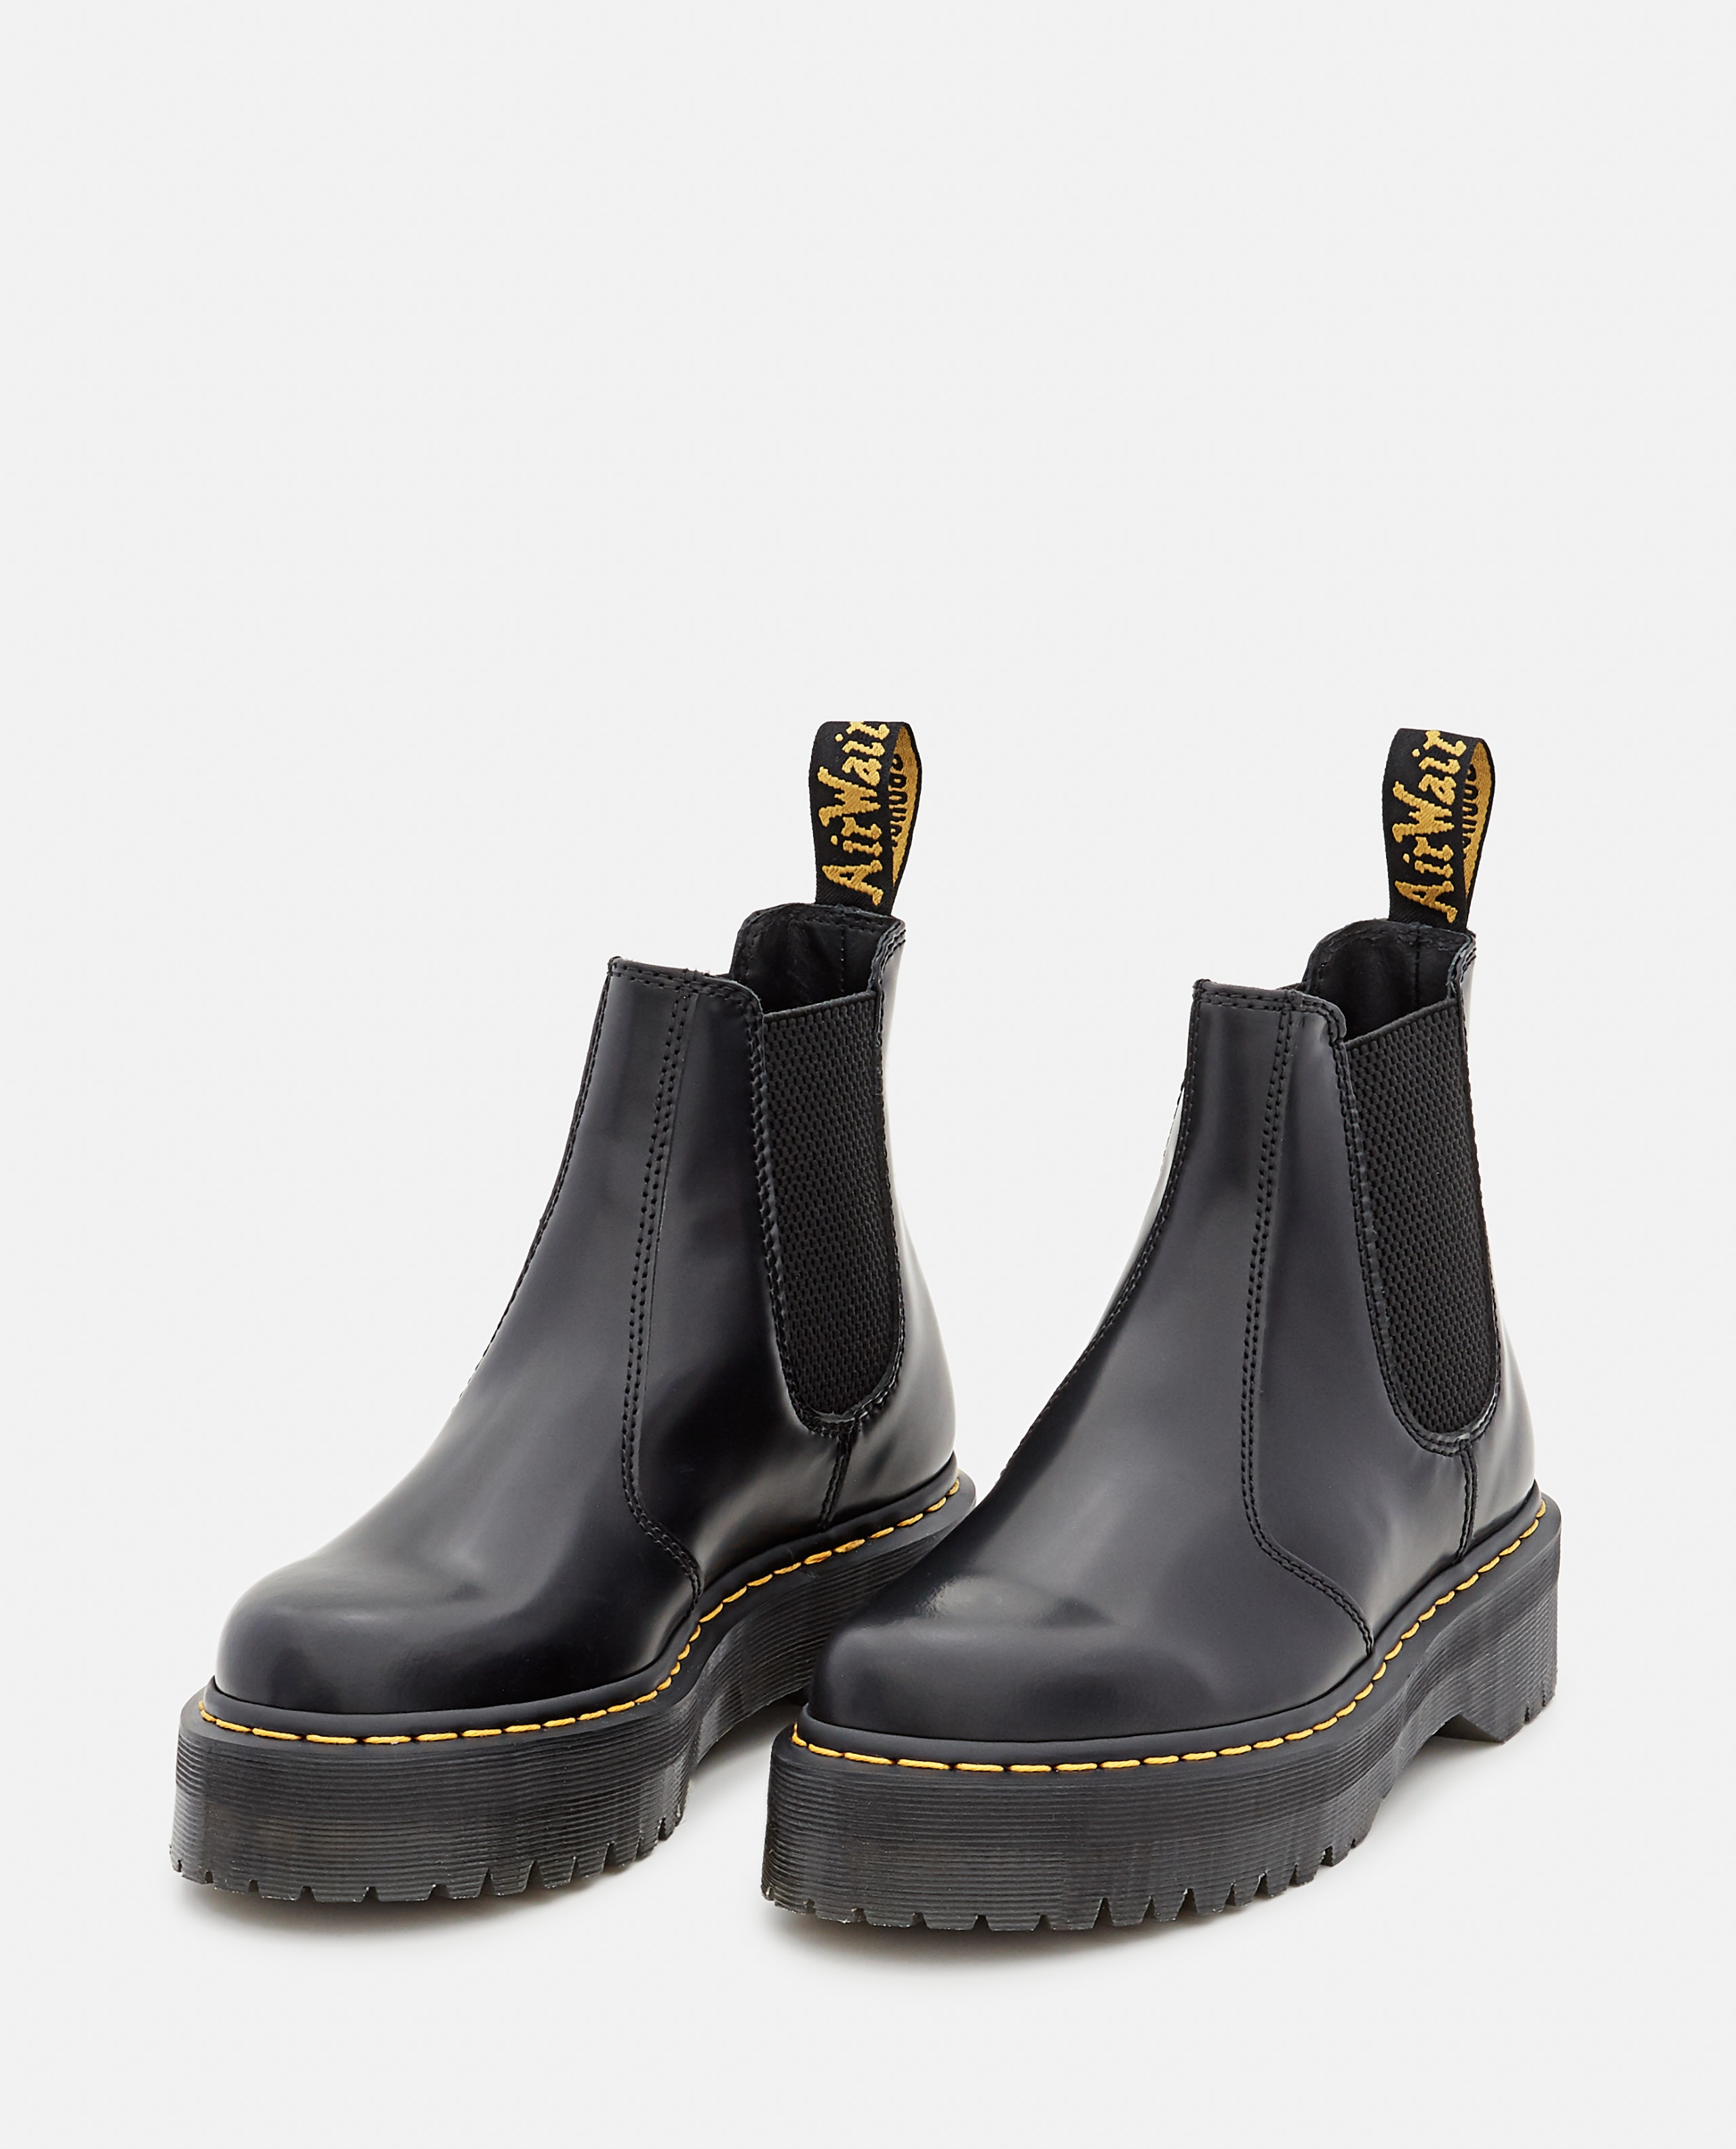 2976 QUAD POLISHED SMOOTH LEATHER CHELSEA BOOTS Women Dr. Martens 000356240051848 2